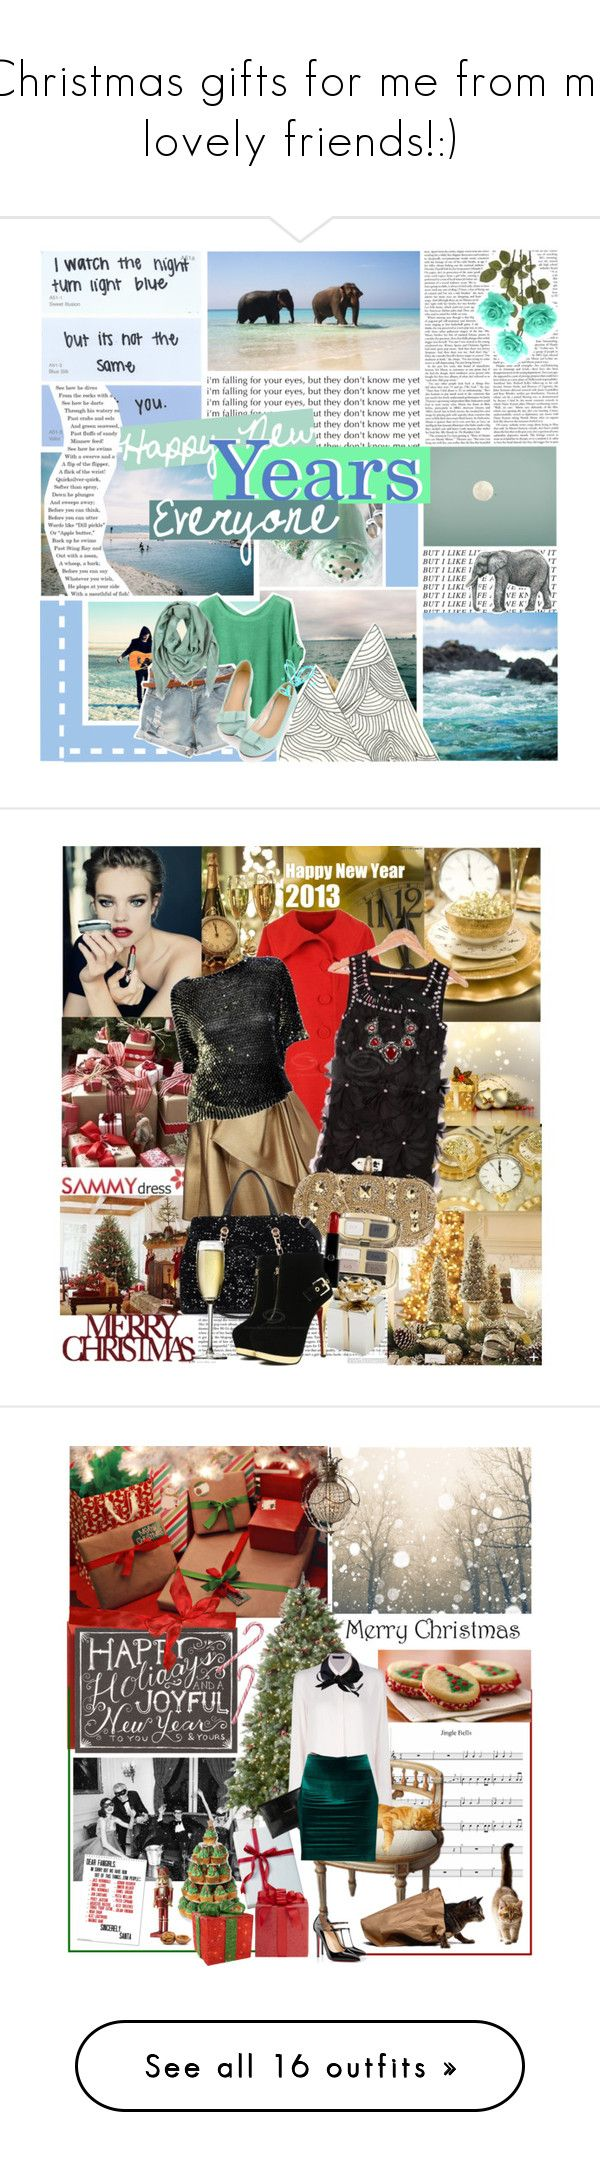 """""""Christmas gifts for me from my lovely friends!:)"""" by asia-12 ❤ liked on Polyvore featuring Fraiche, Mackintosh Philosophy, Balmain, Martino, Guerlain, Dice Kayek, Marchesa, Dolce&Gabbana, Giorgio Armani and Elie Tahari"""